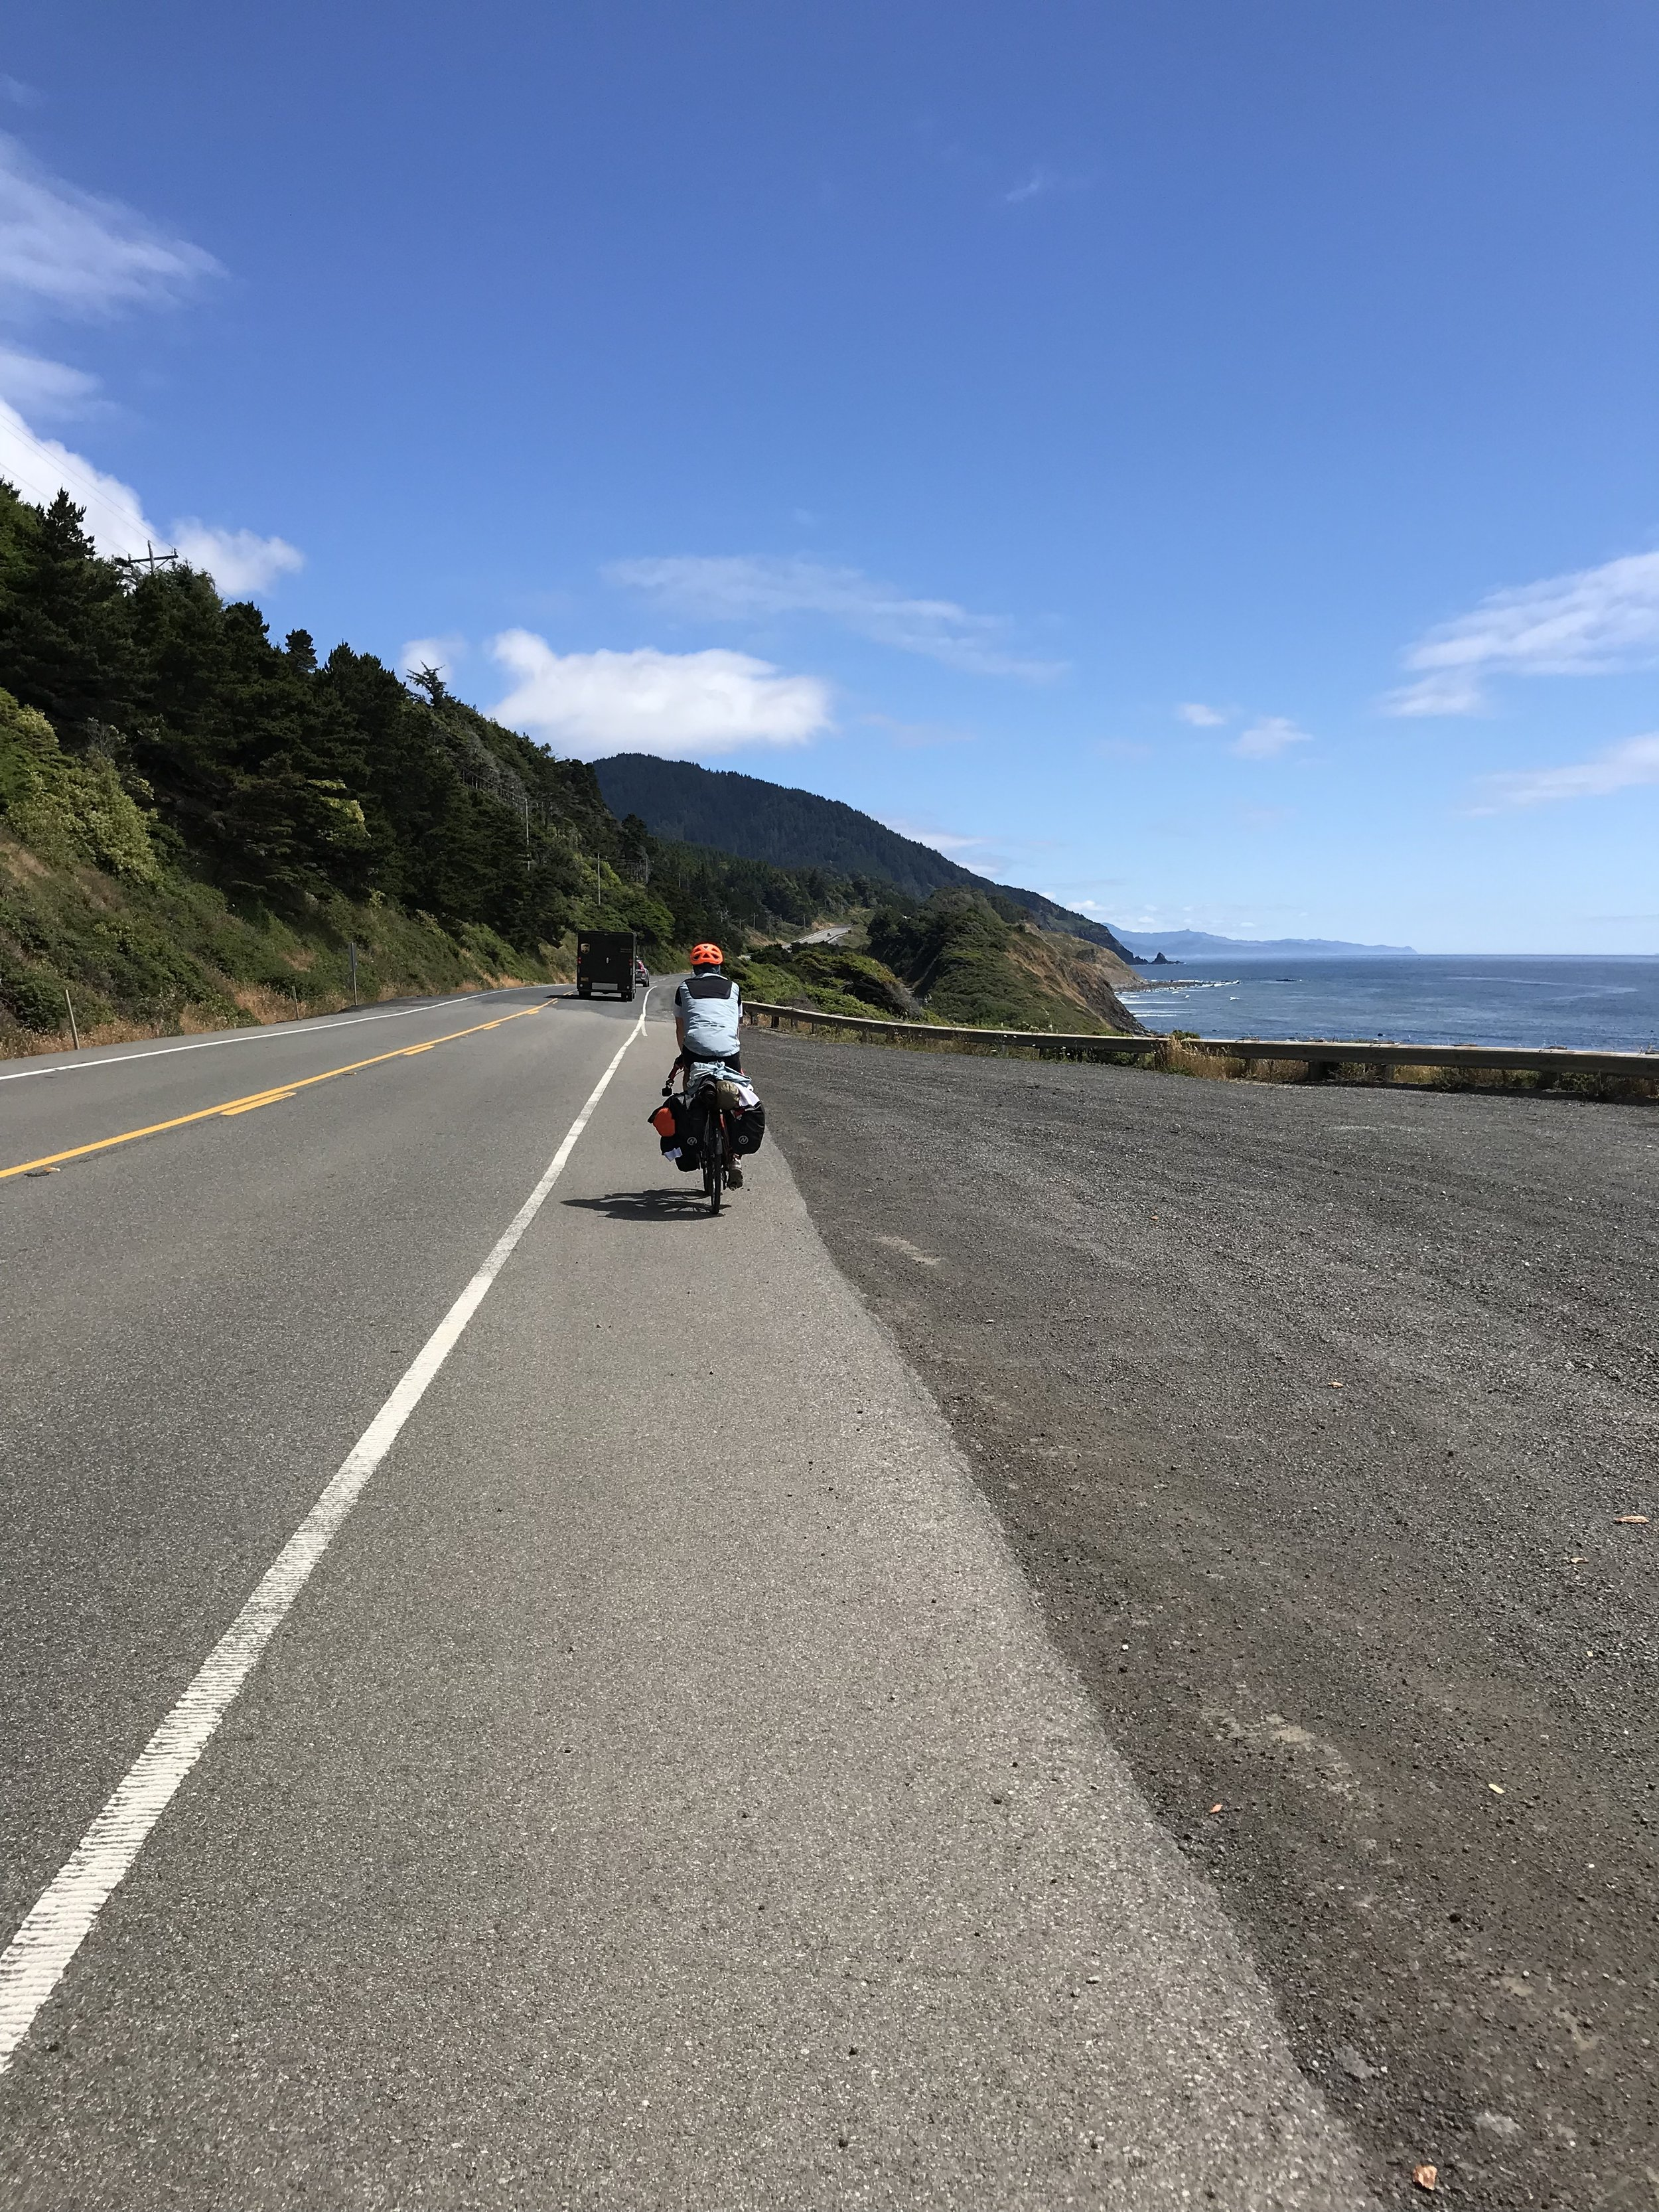 Friday we rode to Humbug Mountain and stayed at the state park there.